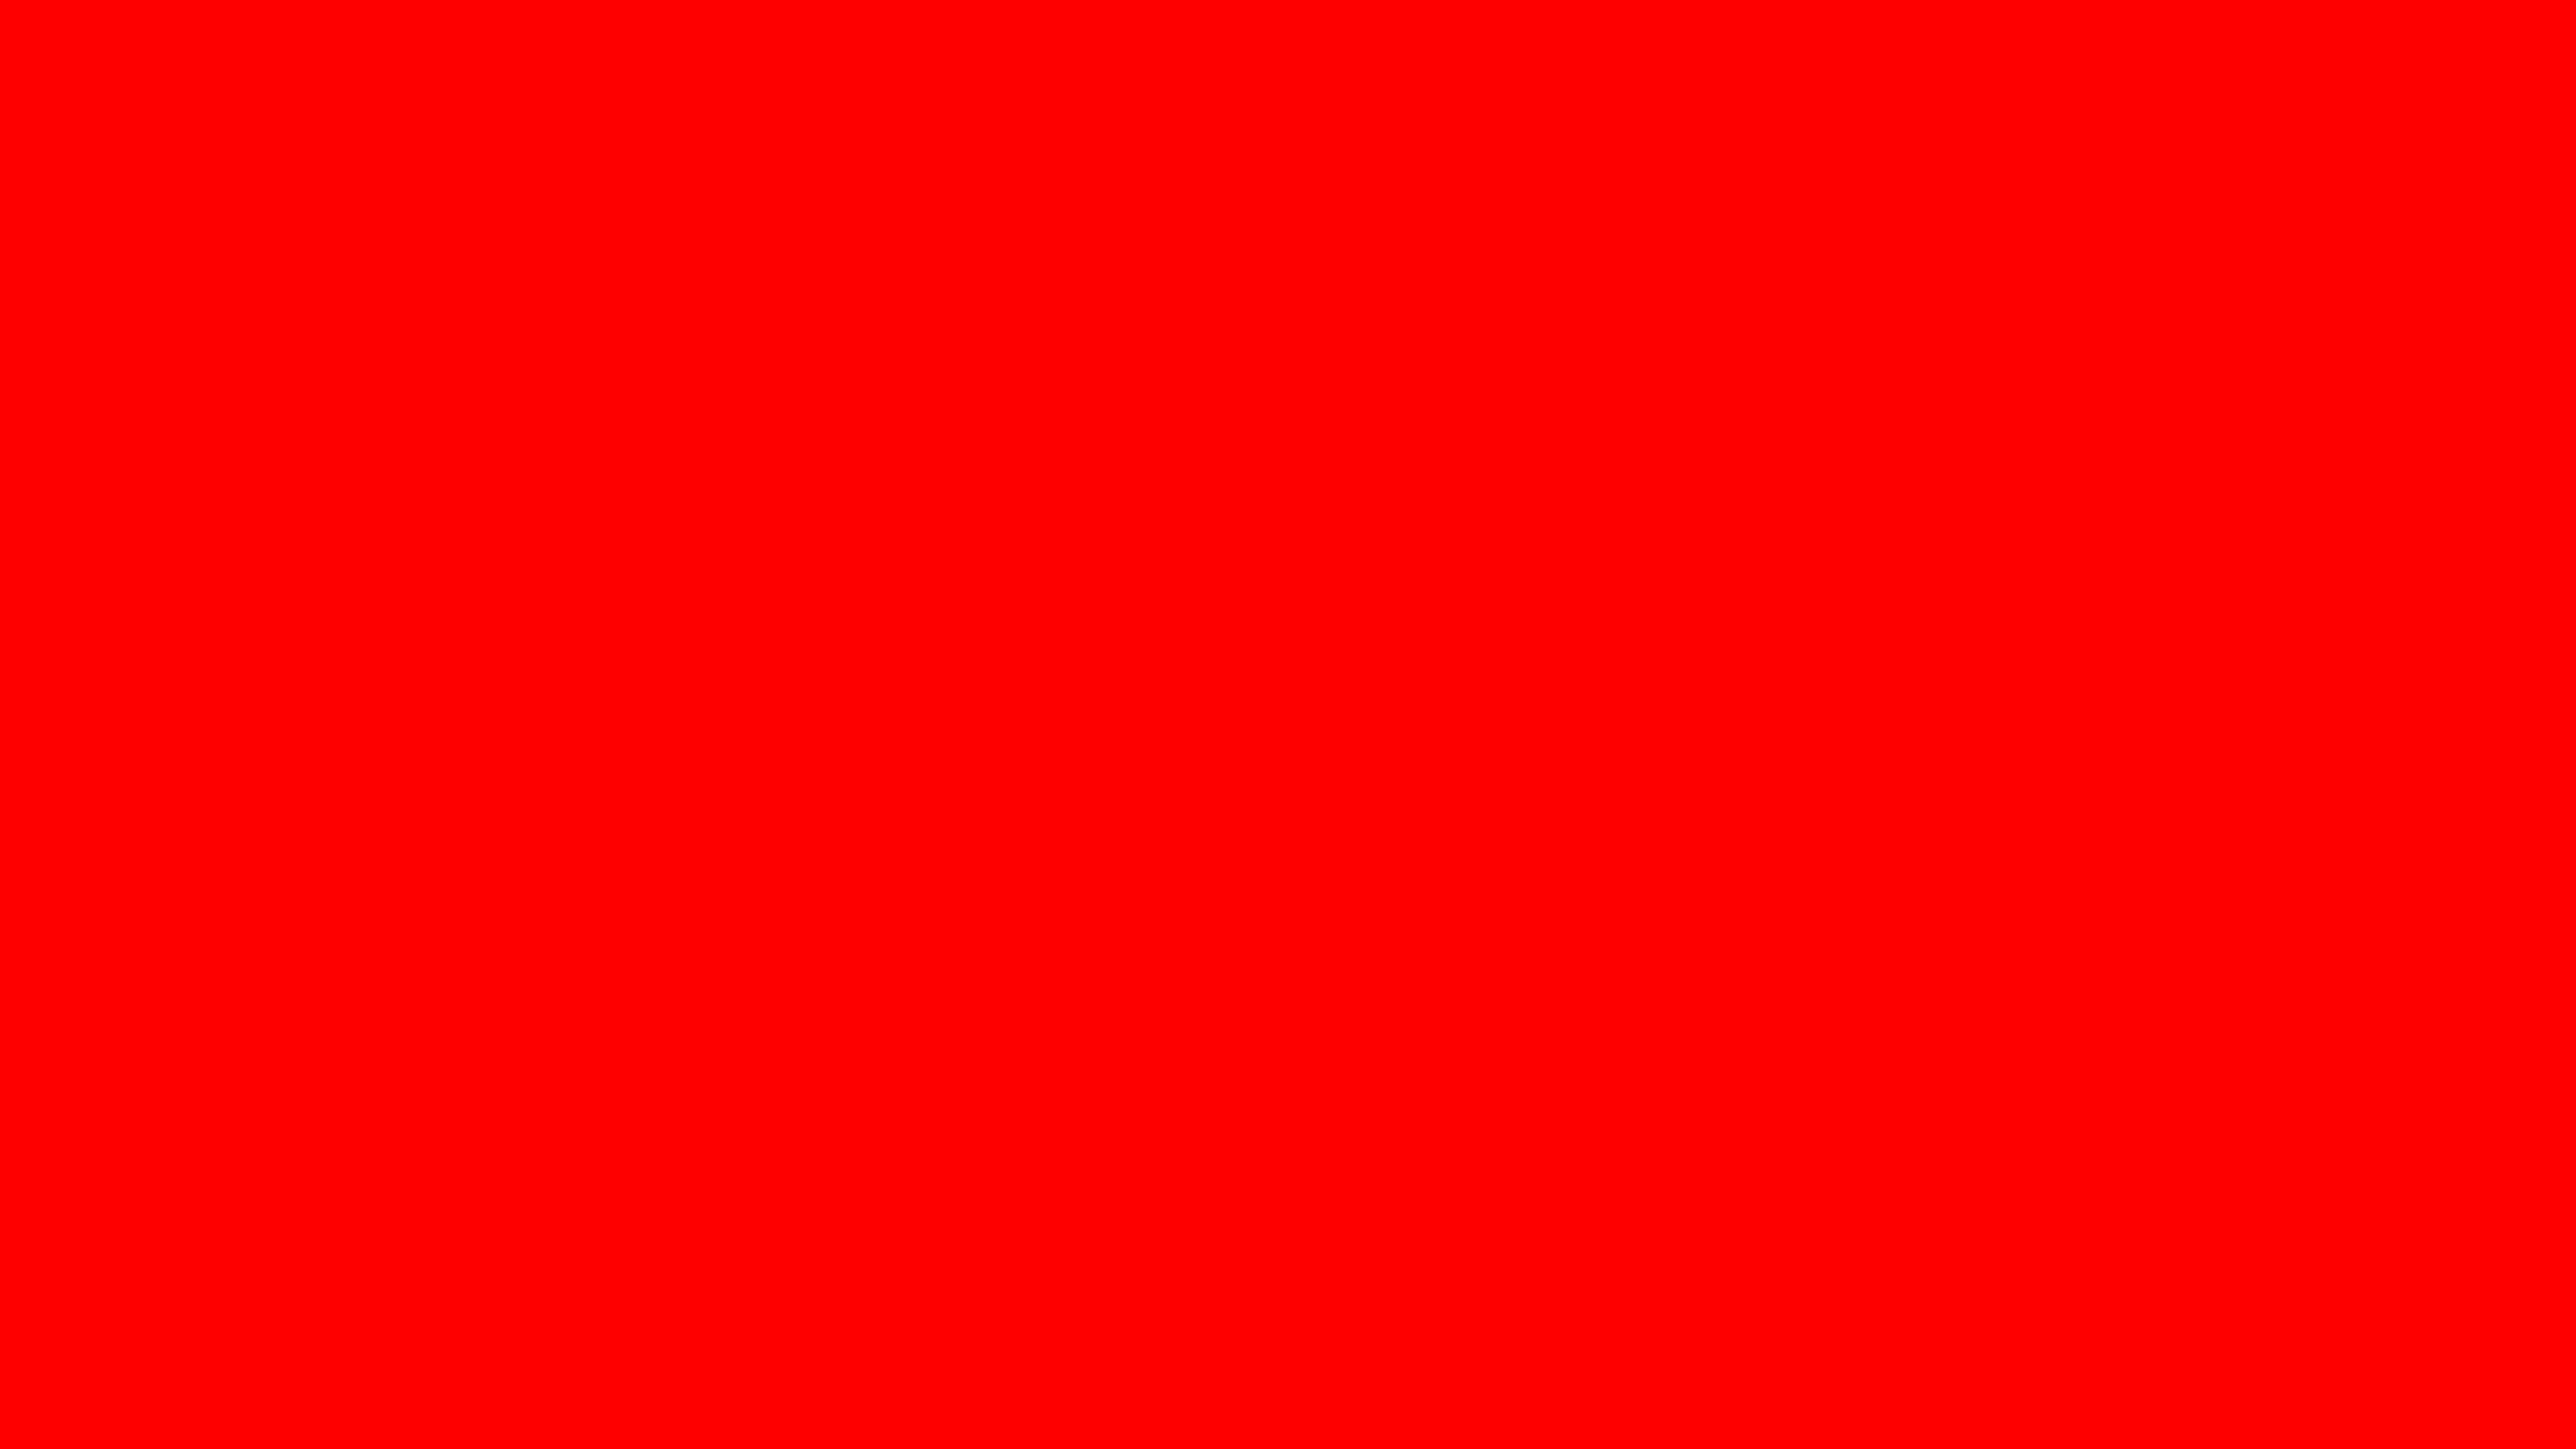 7680x4320 Red Solid Color Background